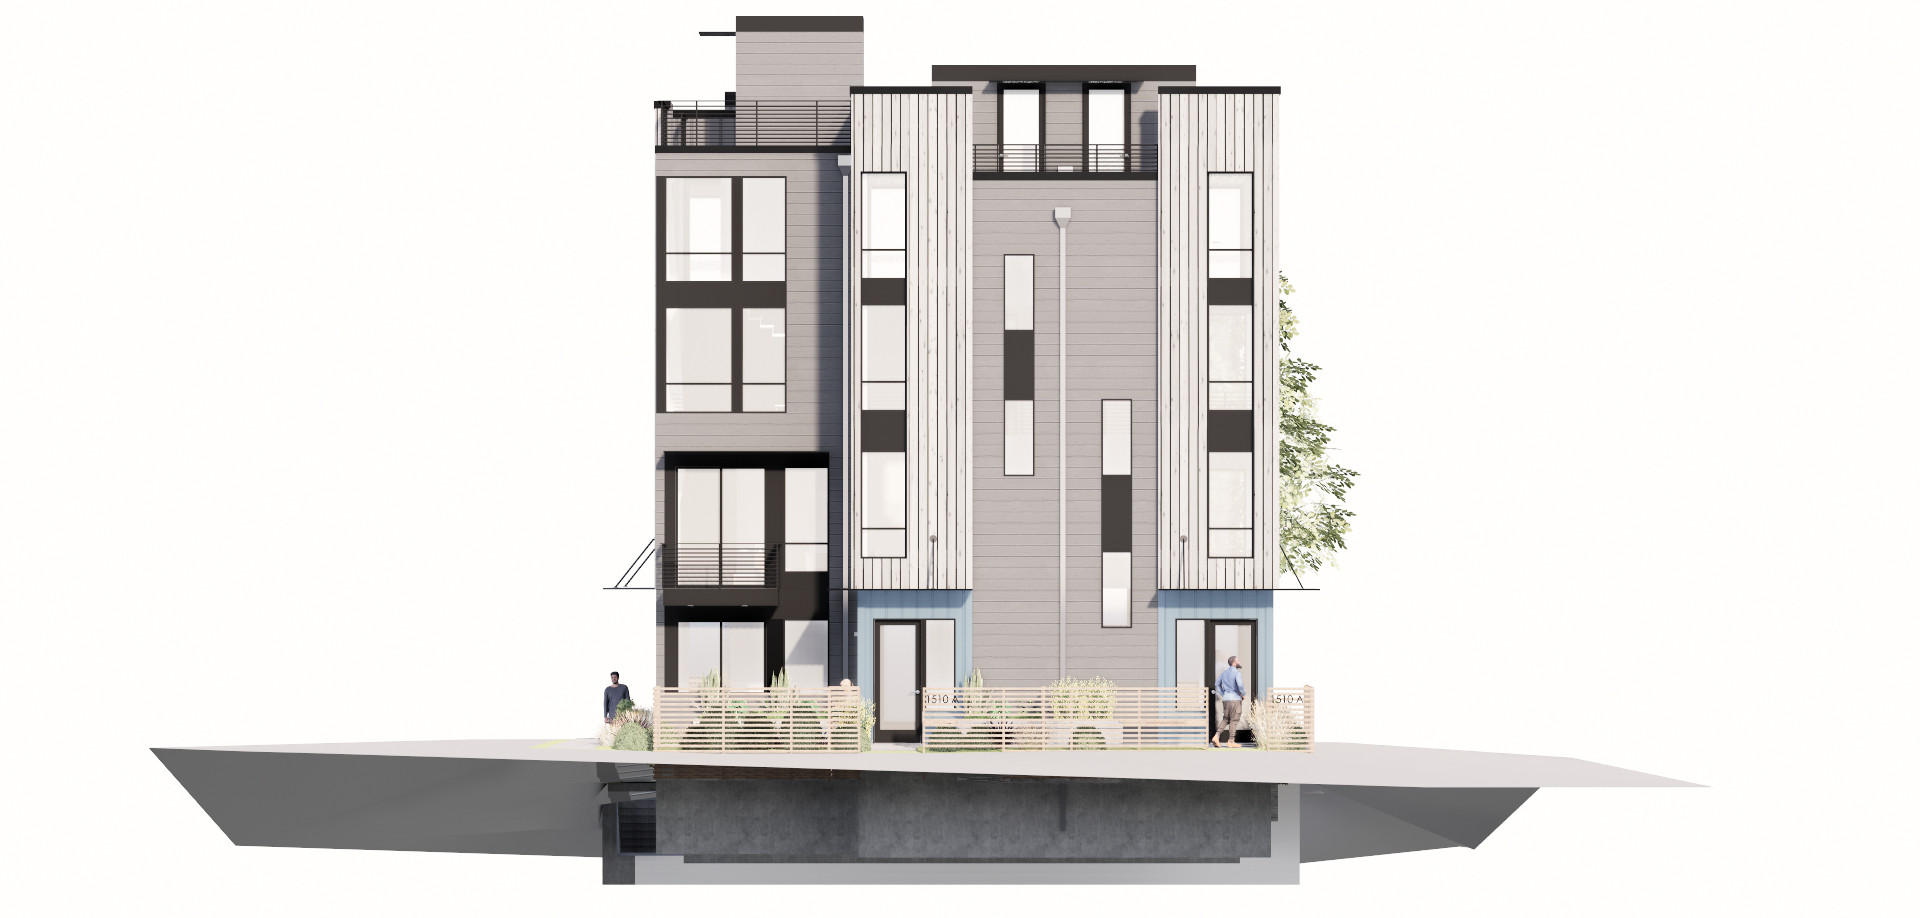 2009_PikePineTownhomes_ConeArchitecture_Seattle_w2.png